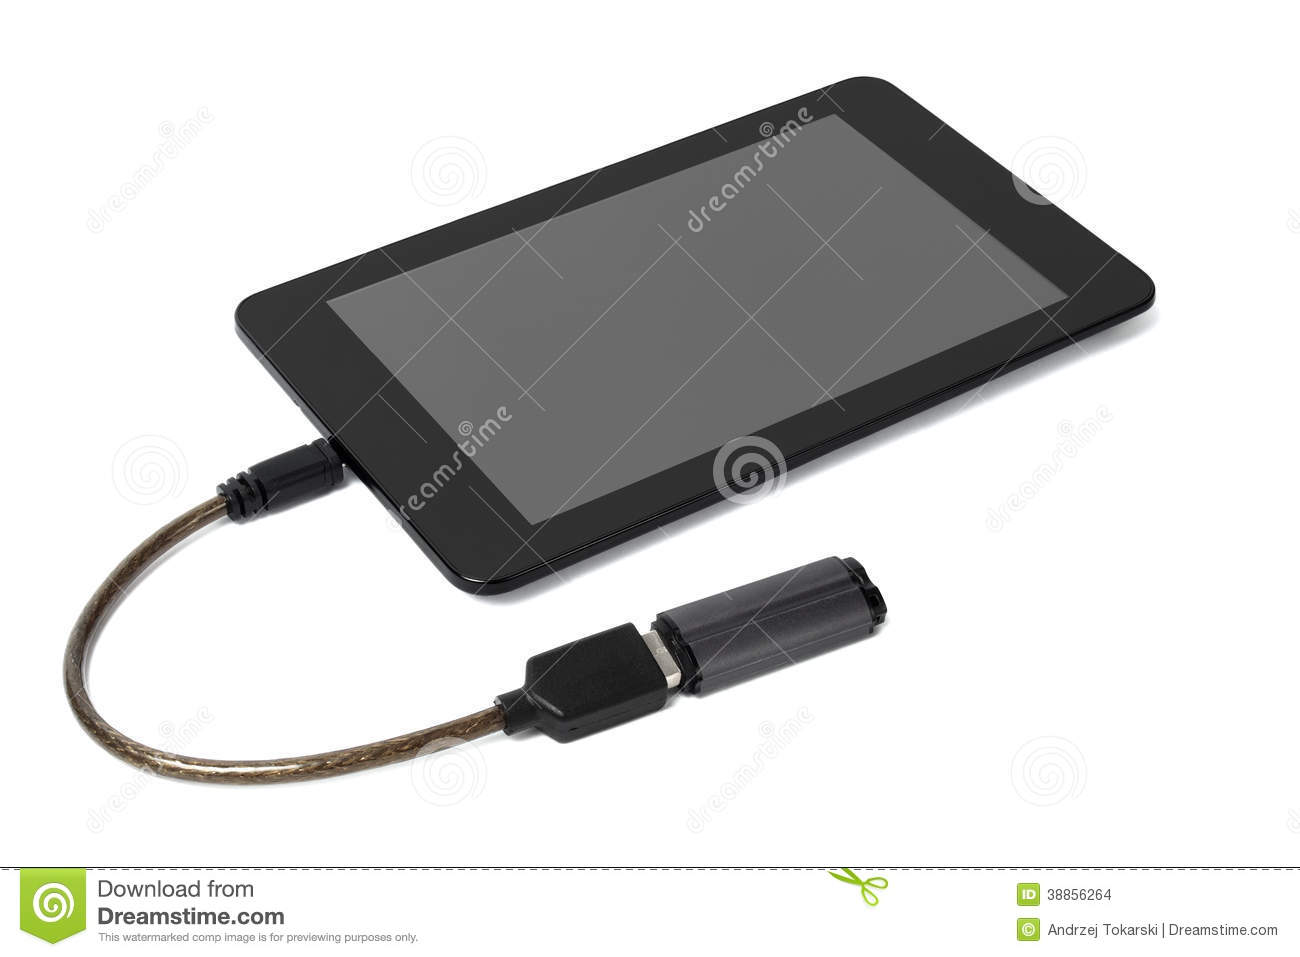 Tablet with pen drive stock photo. Image of computer - 38856264